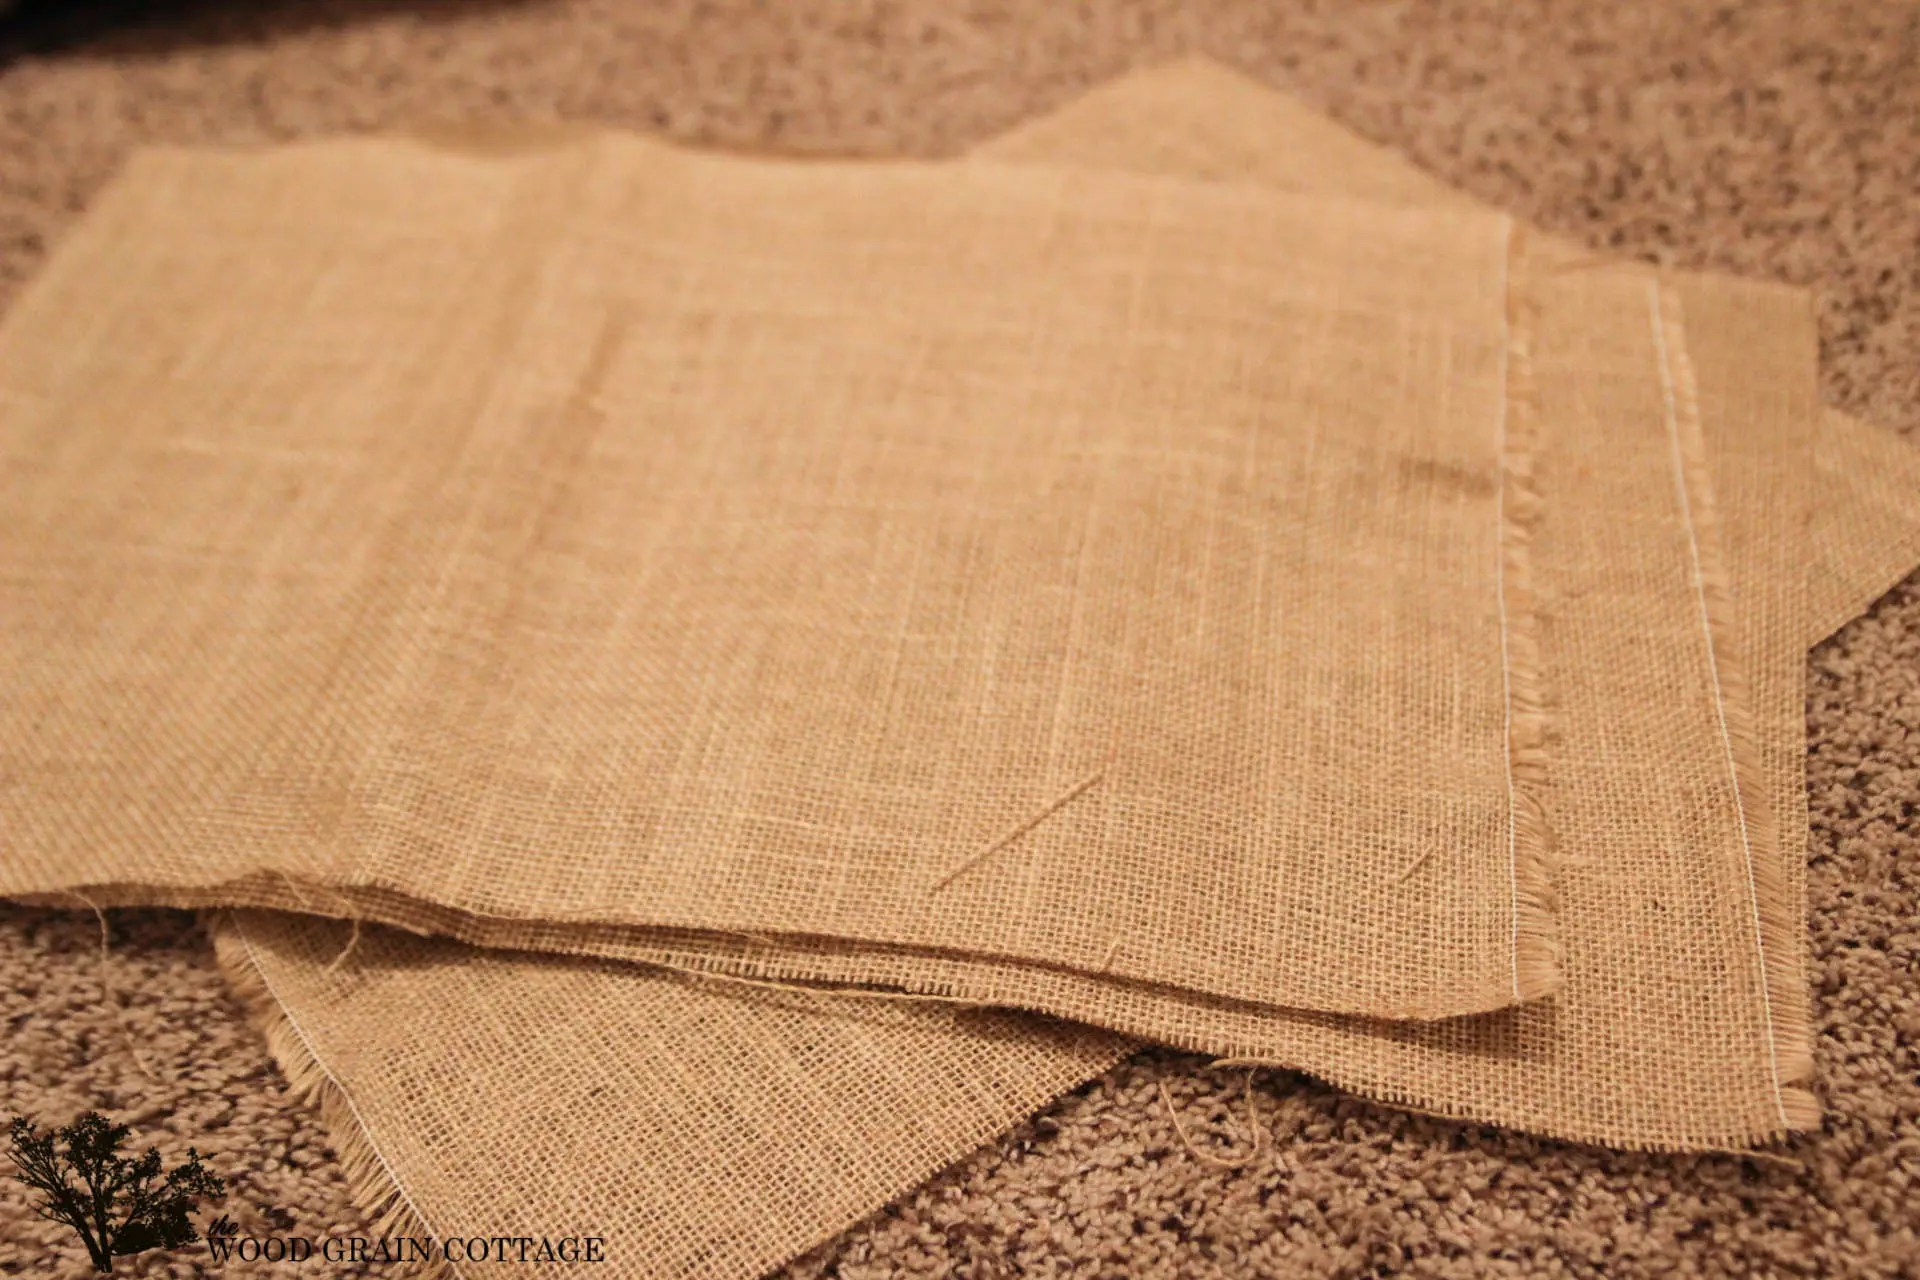 DIY Burlap Placemats The Wood Grain Cottage